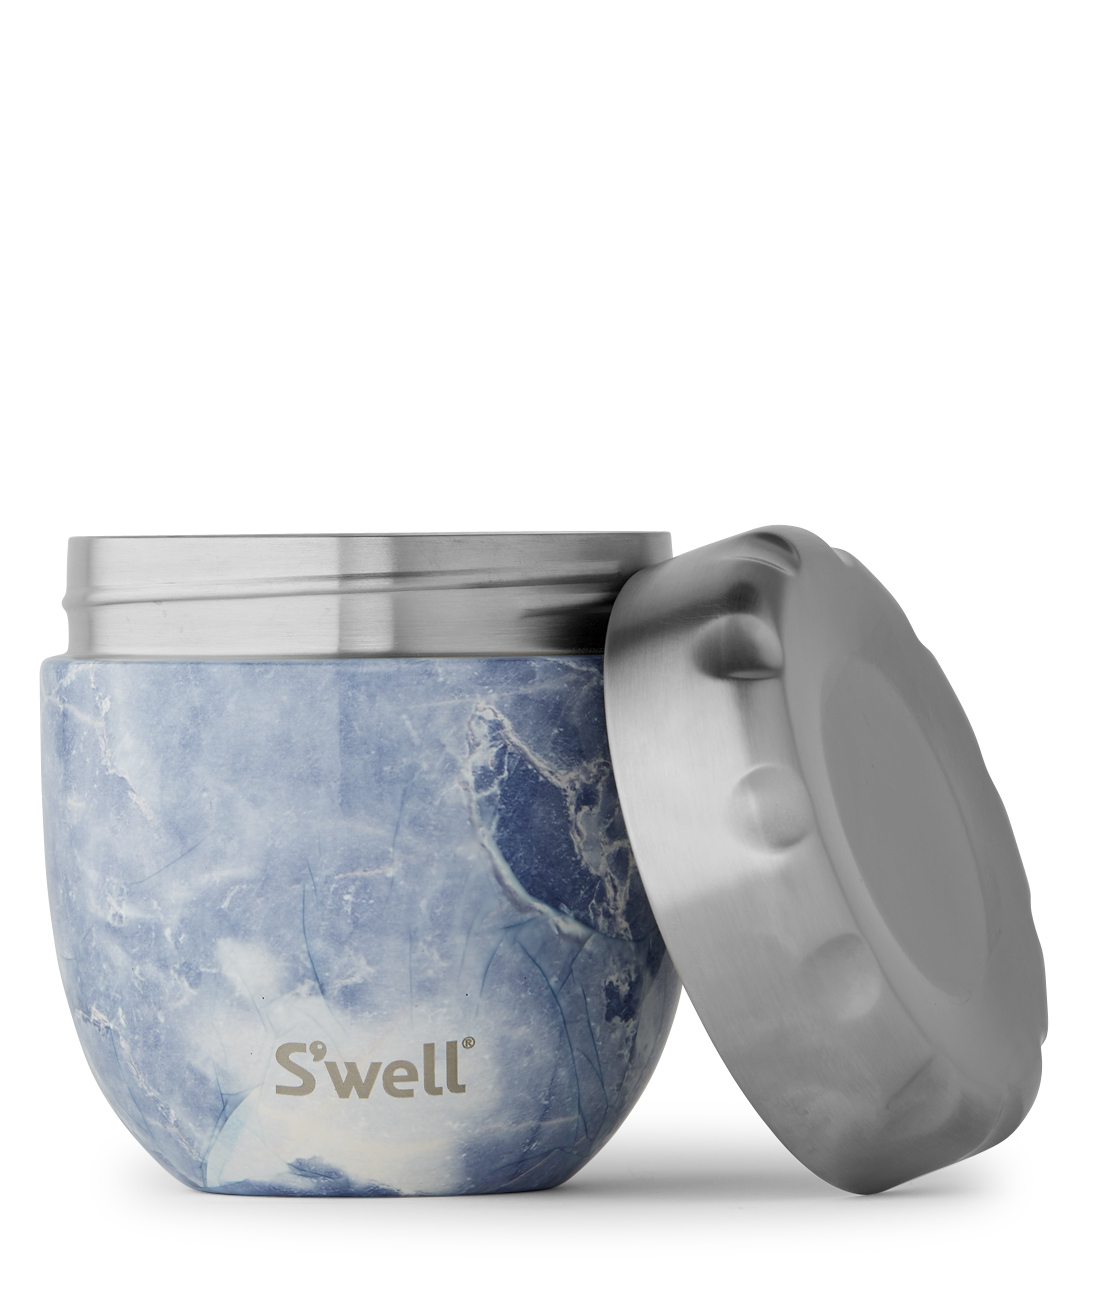 S'well eats new insulated food containers in sophisticated patterns